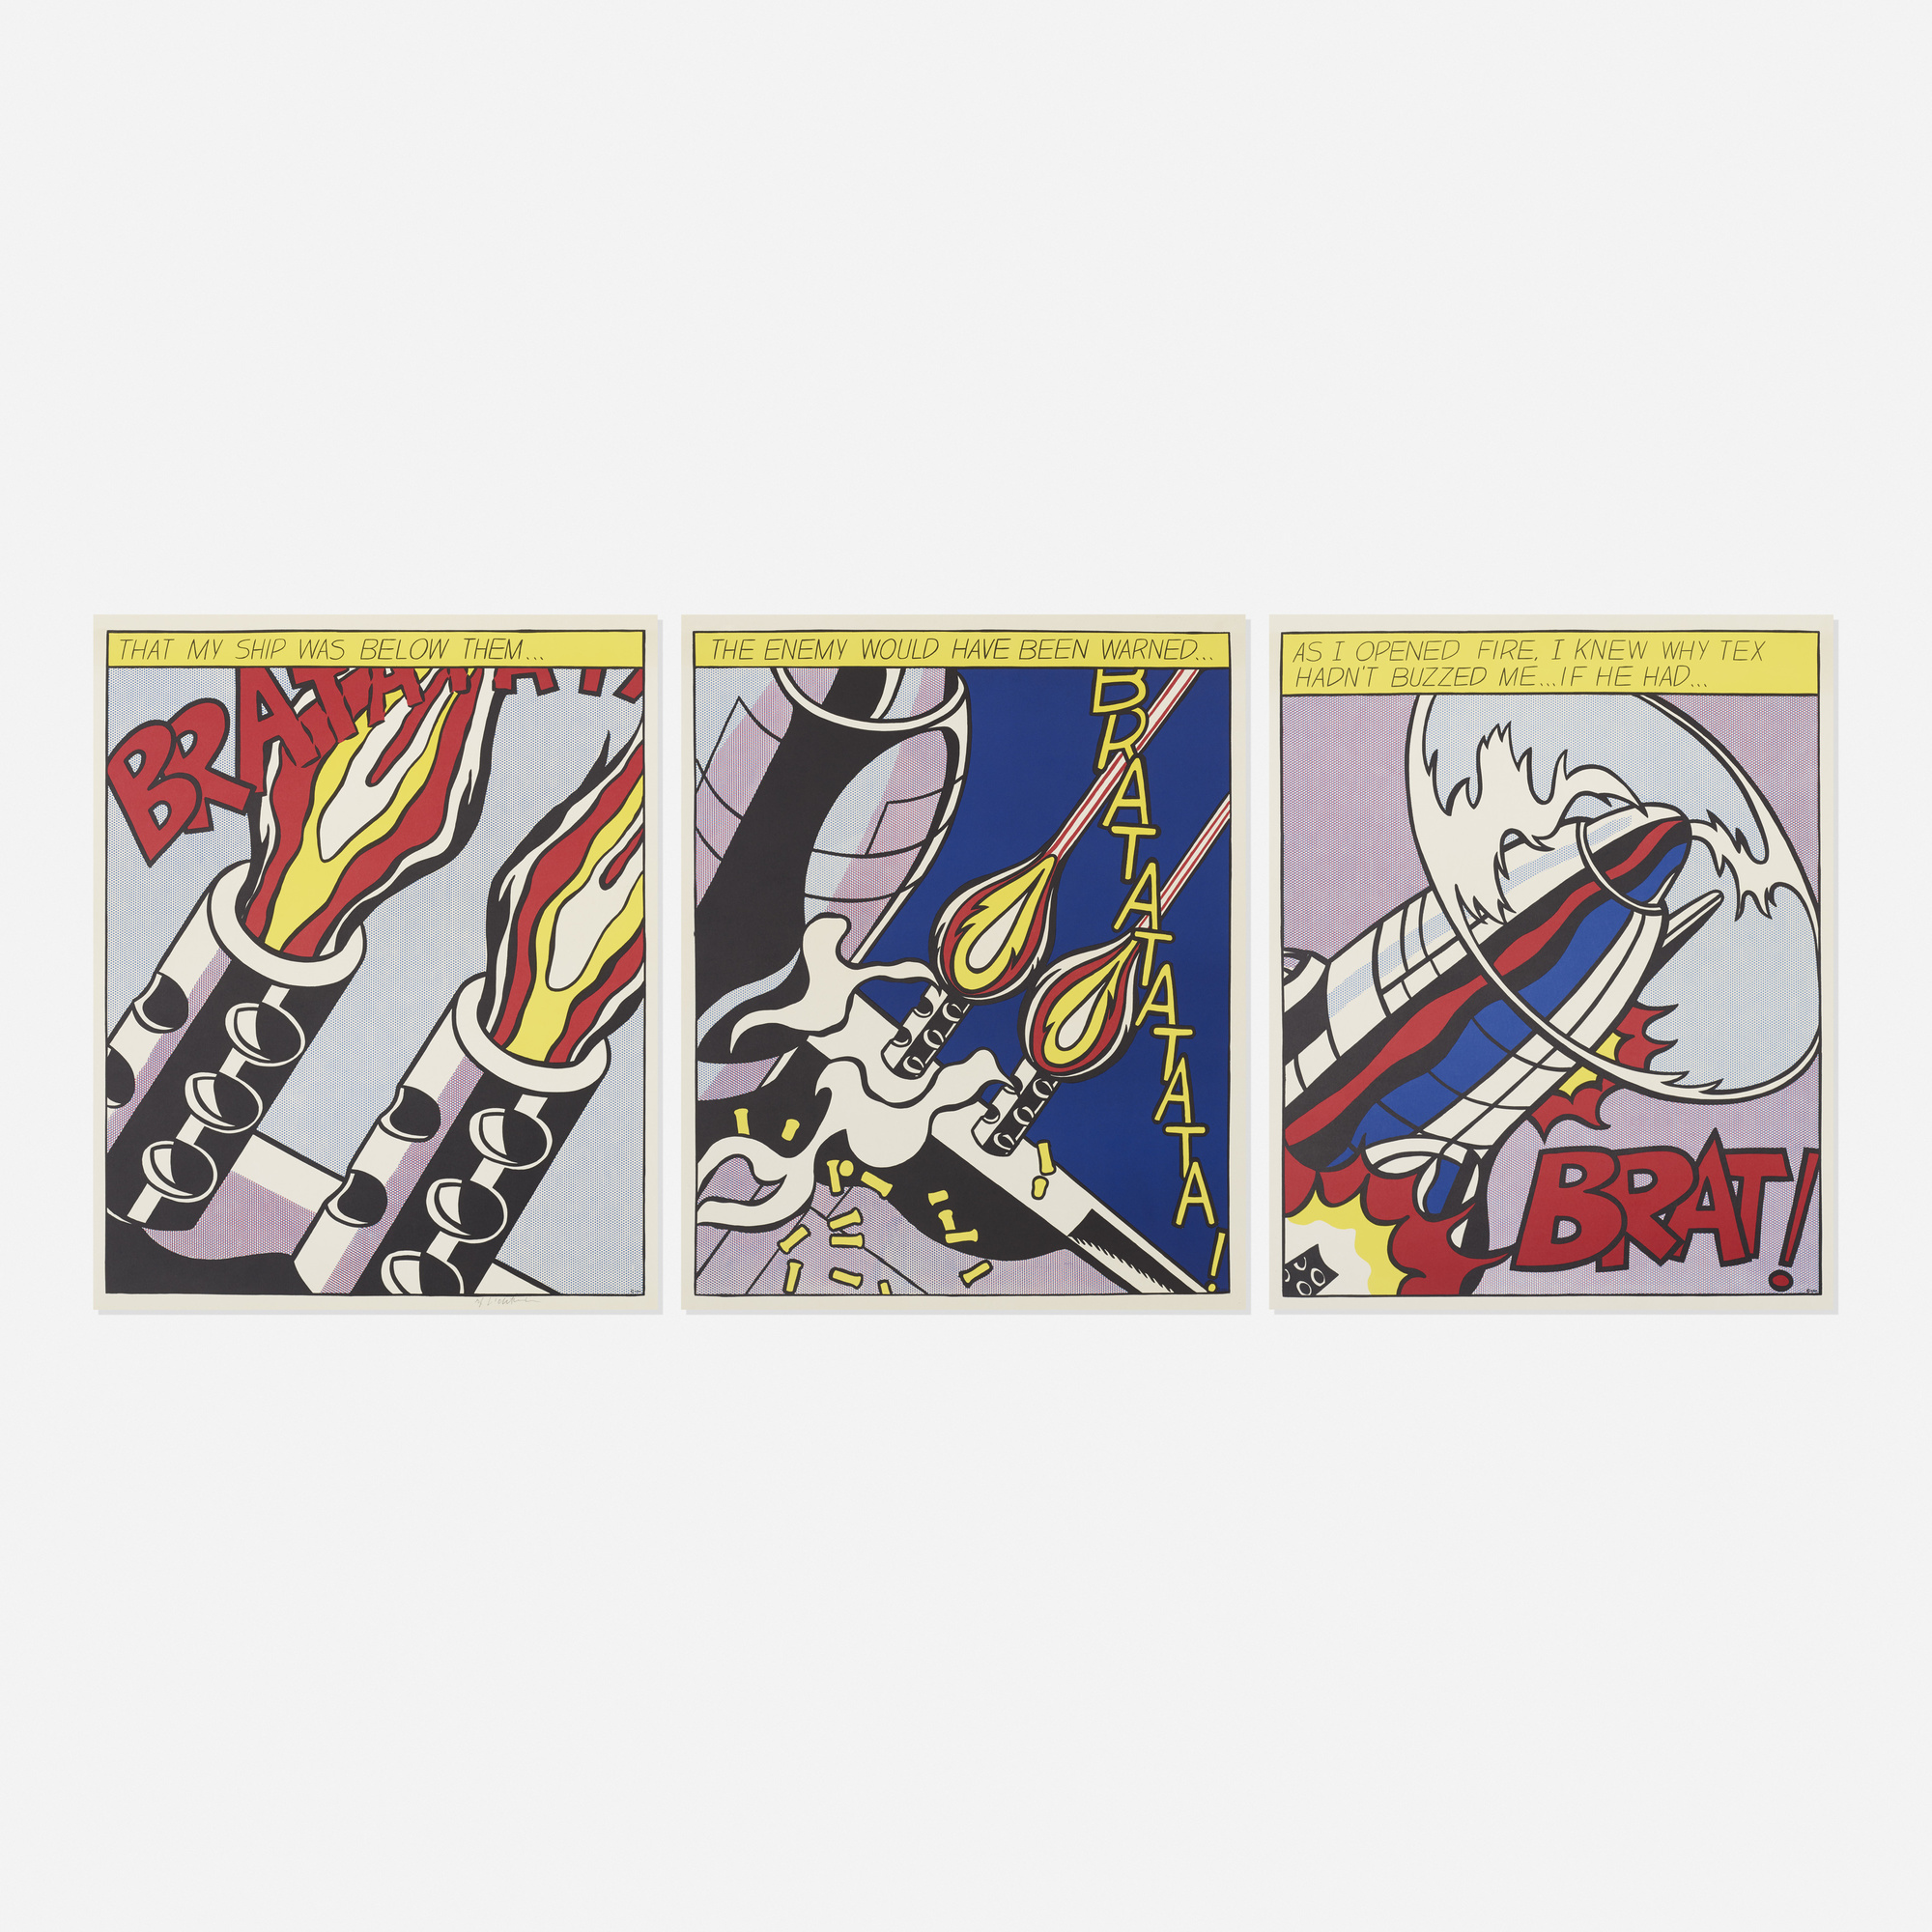 172: Roy Lichtenstein / As I Opened Fire poster (1 of 1)